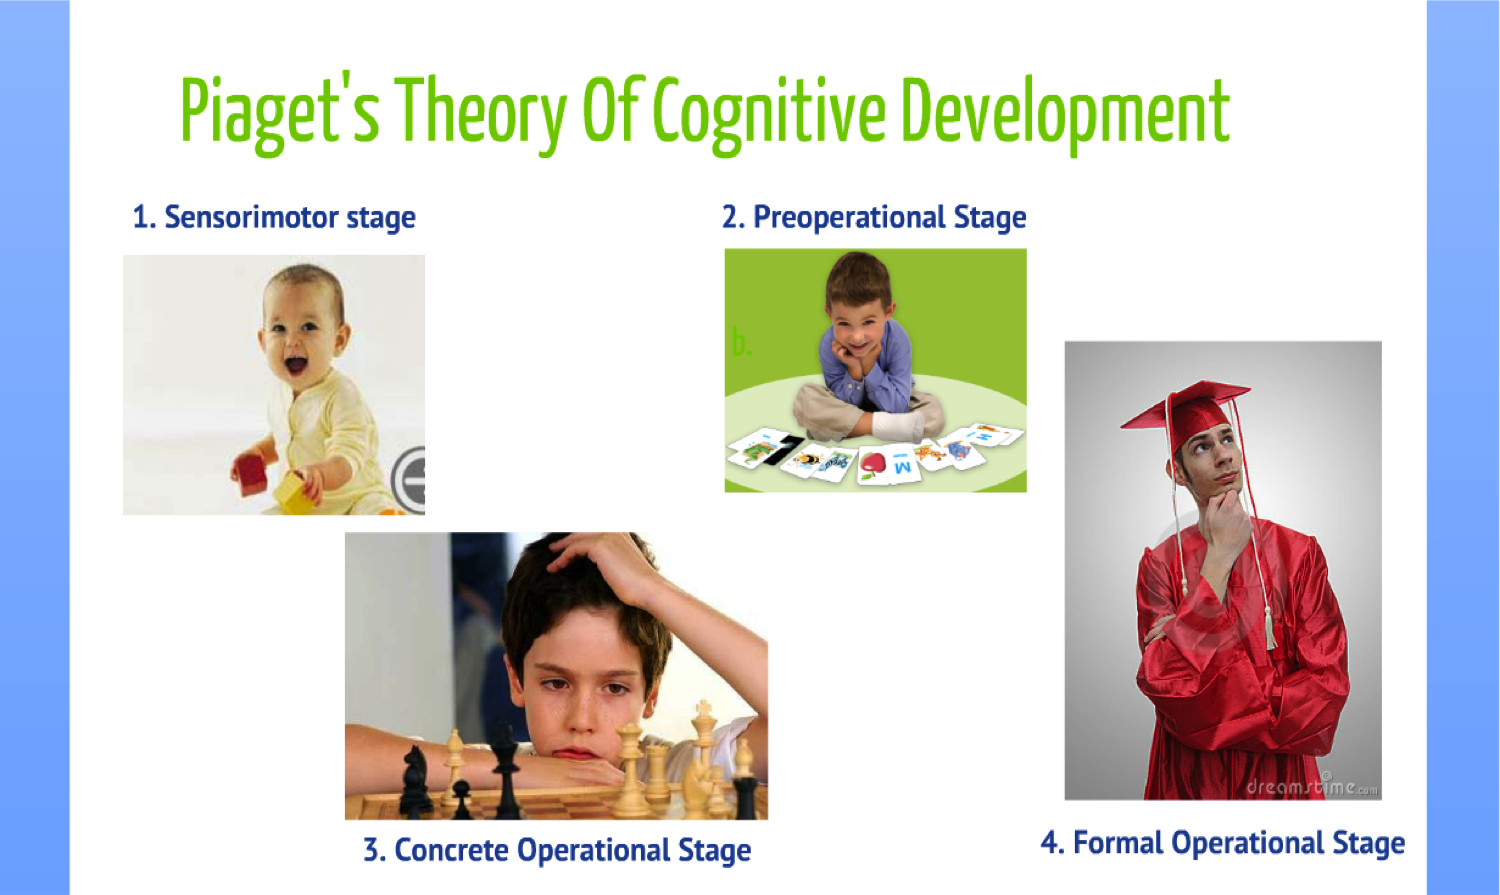 piaget essay piaget theory of cognitive development essay  piaget theory of cognitive development essay evaluating and comparing two theories of cognitive development cognitive development technology